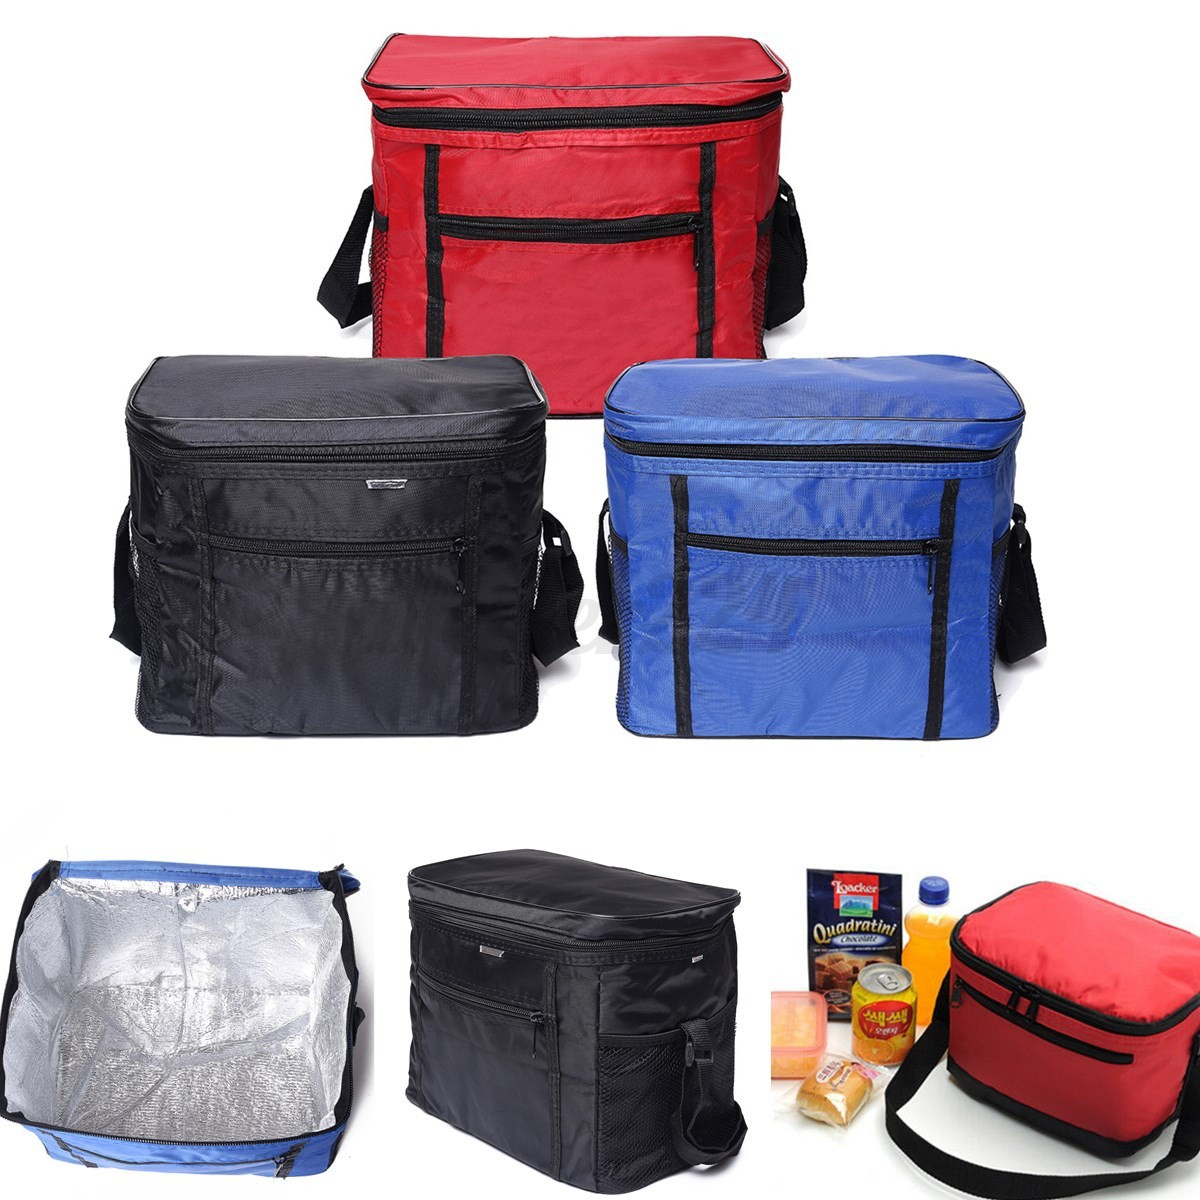 outdoor coolers lunch box insulated picnic bento bags tote camping outing bag ebay. Black Bedroom Furniture Sets. Home Design Ideas